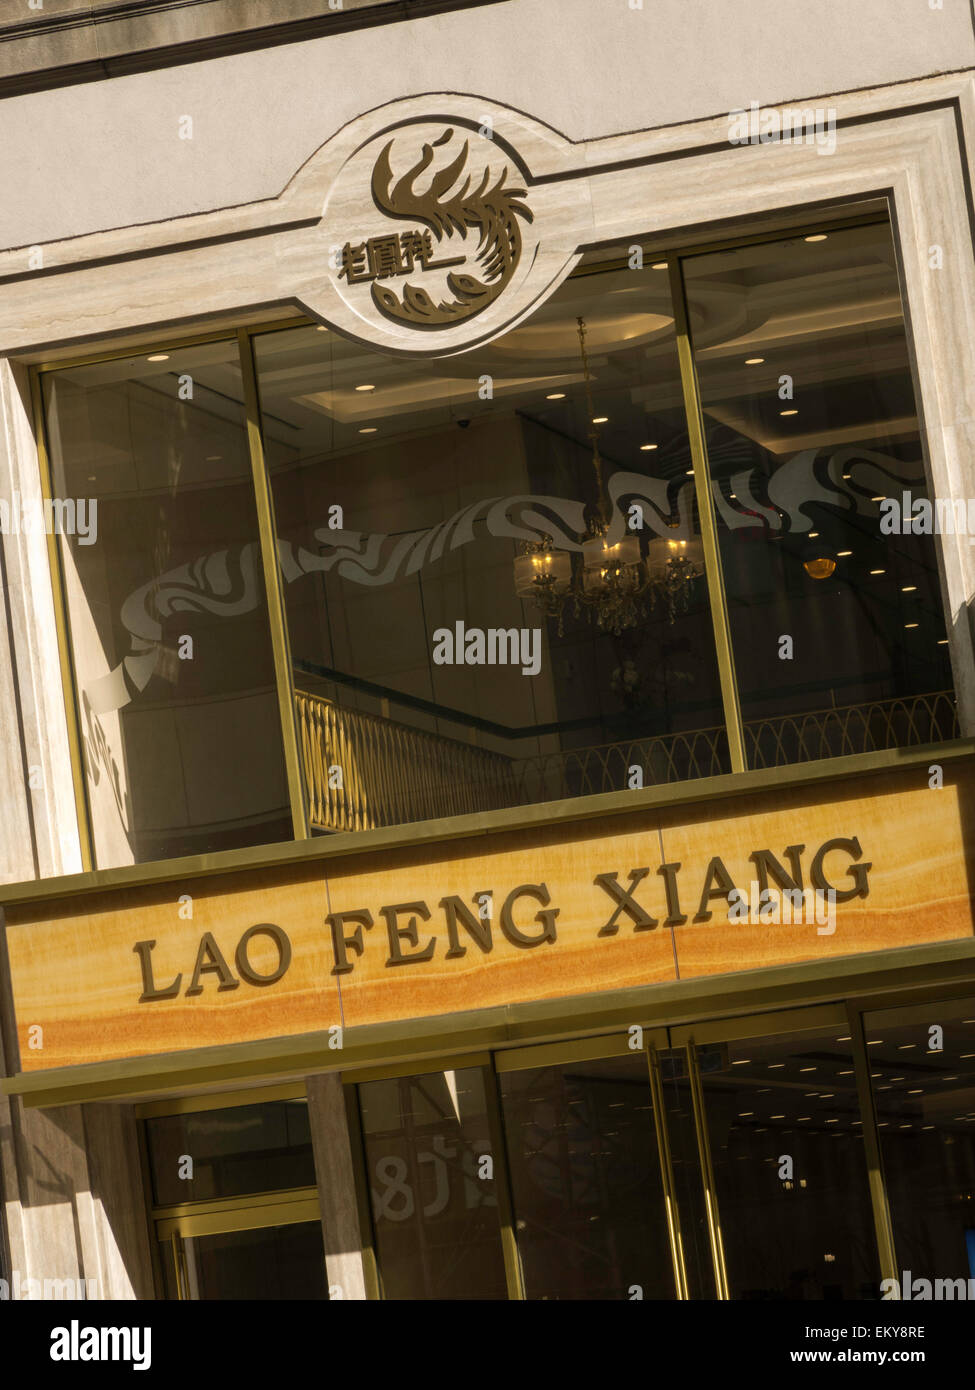 Lao feng xiang jewelry store facade nyc usa stock photo for Jewelry stores in usa